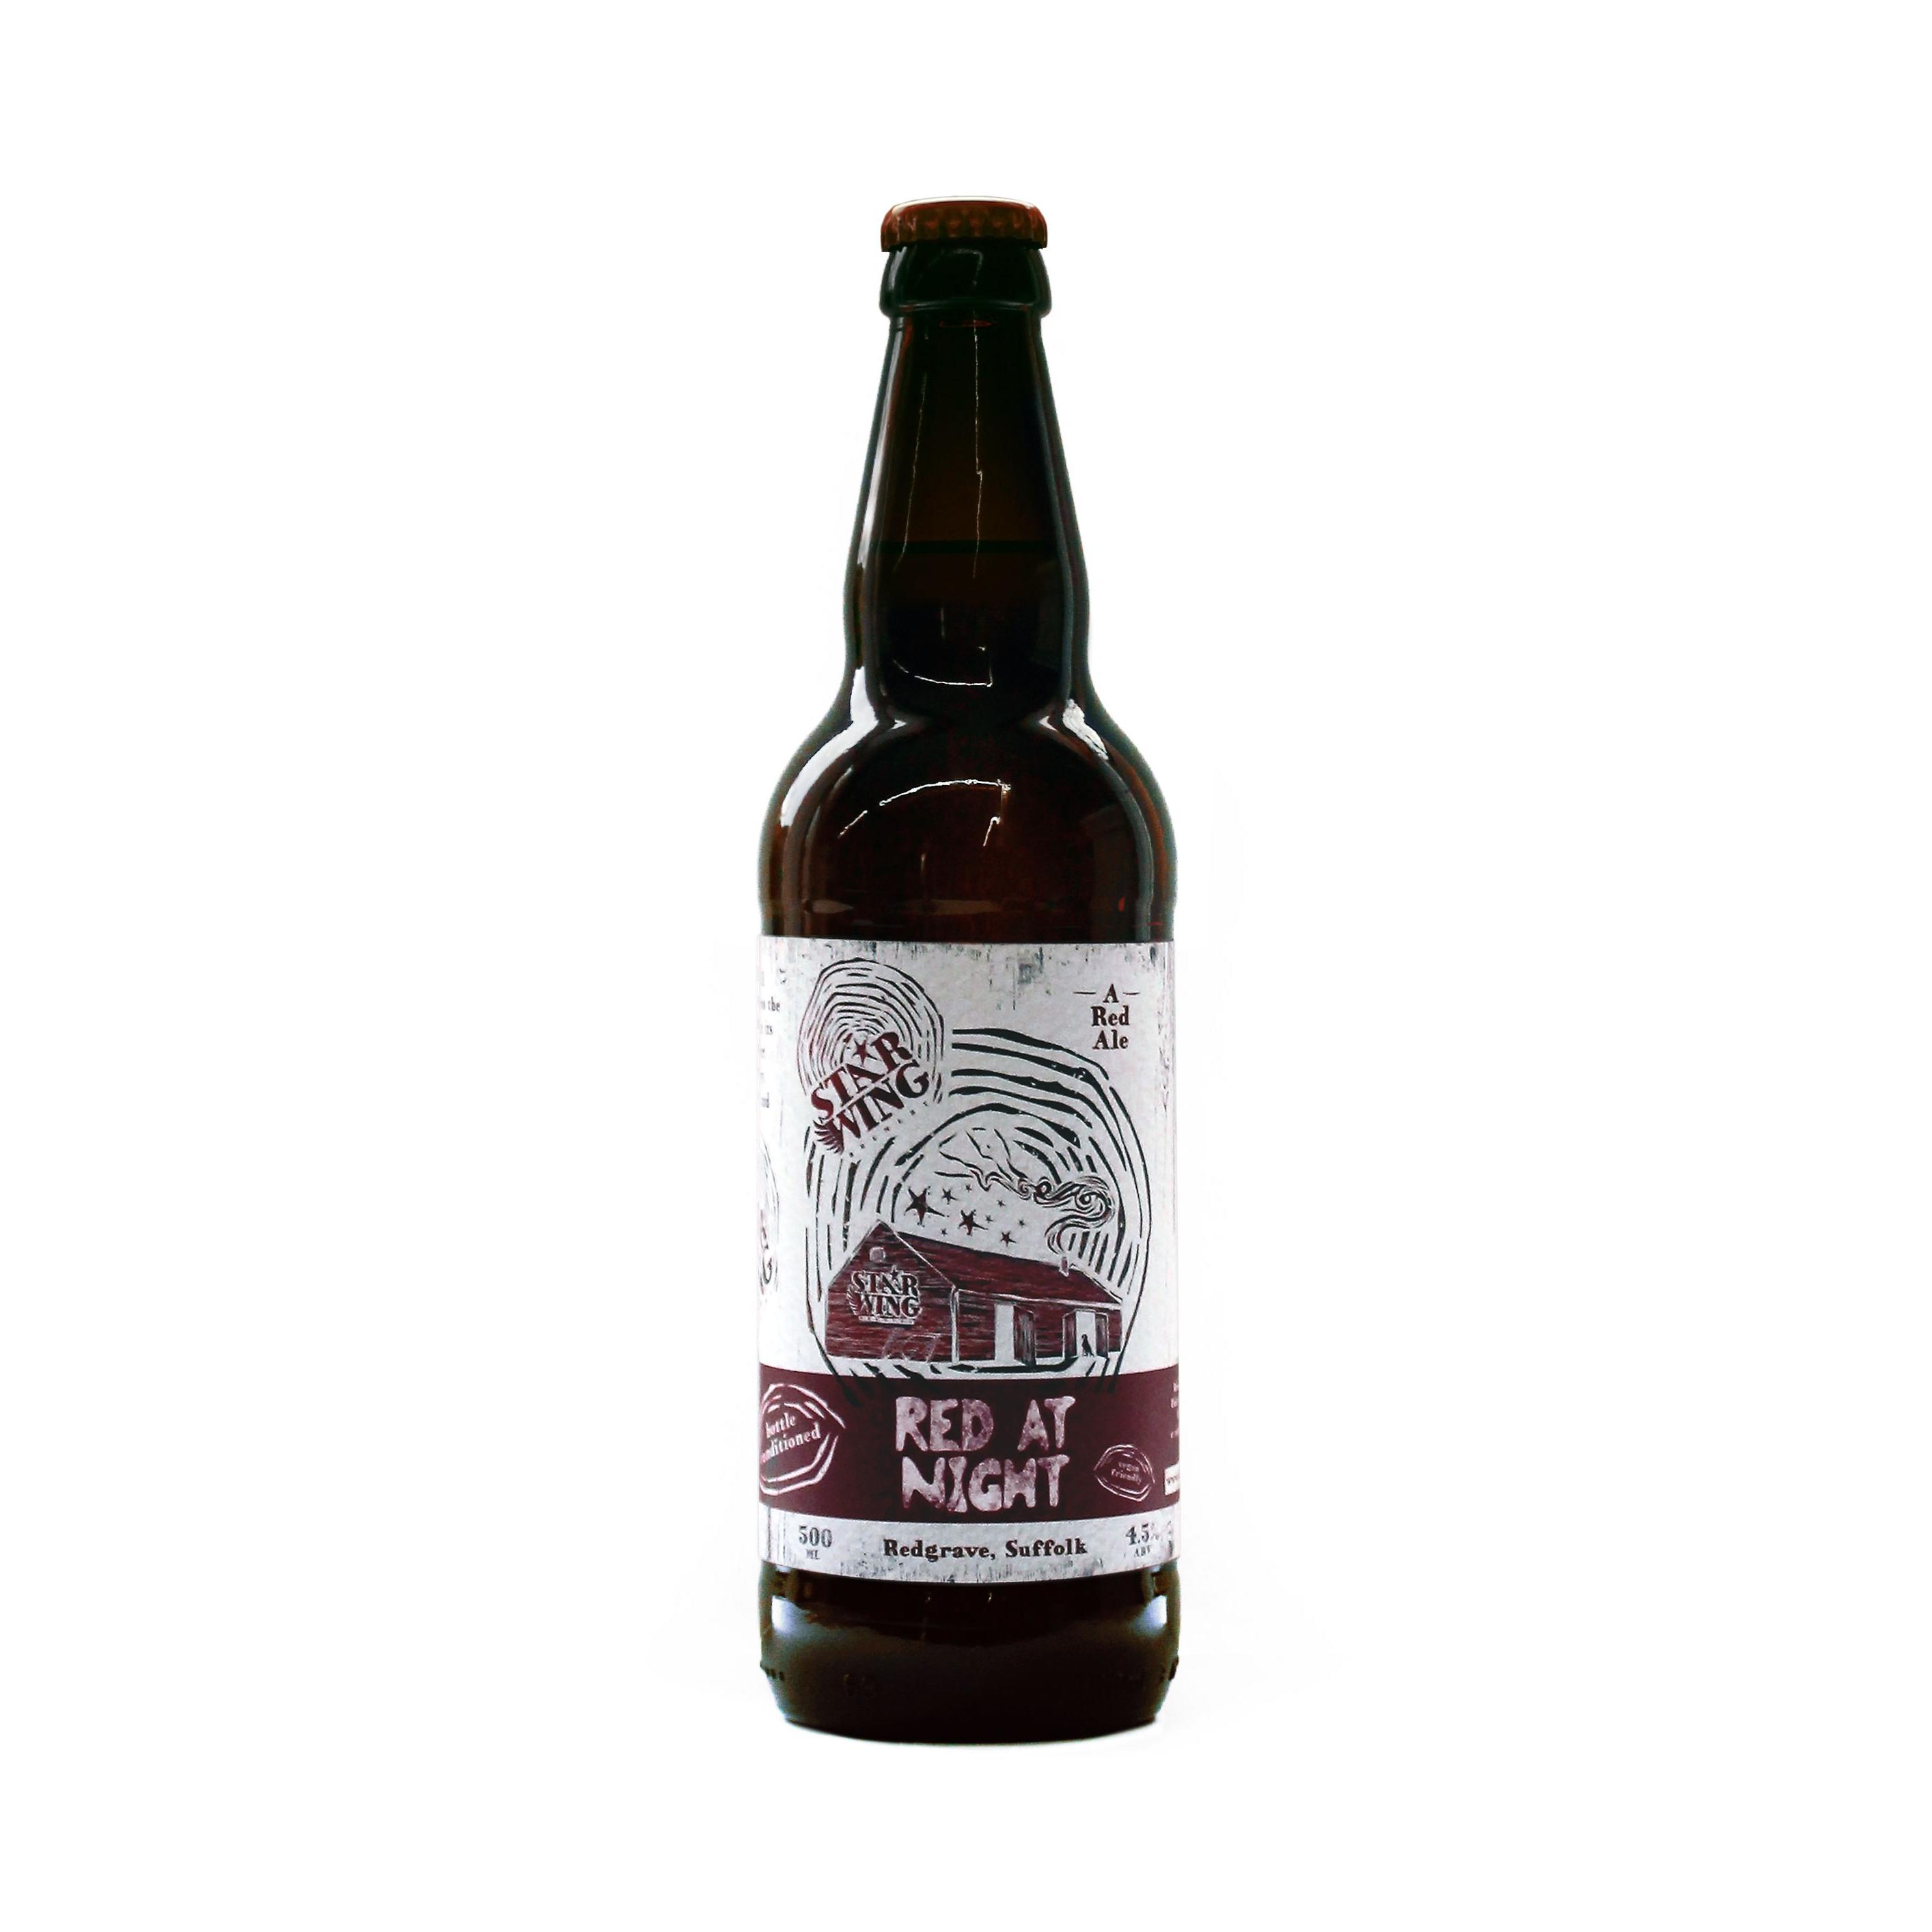 A 500ml bottle of delicious Star Wing Brewery's Red at Night, 4.5% Red Ale